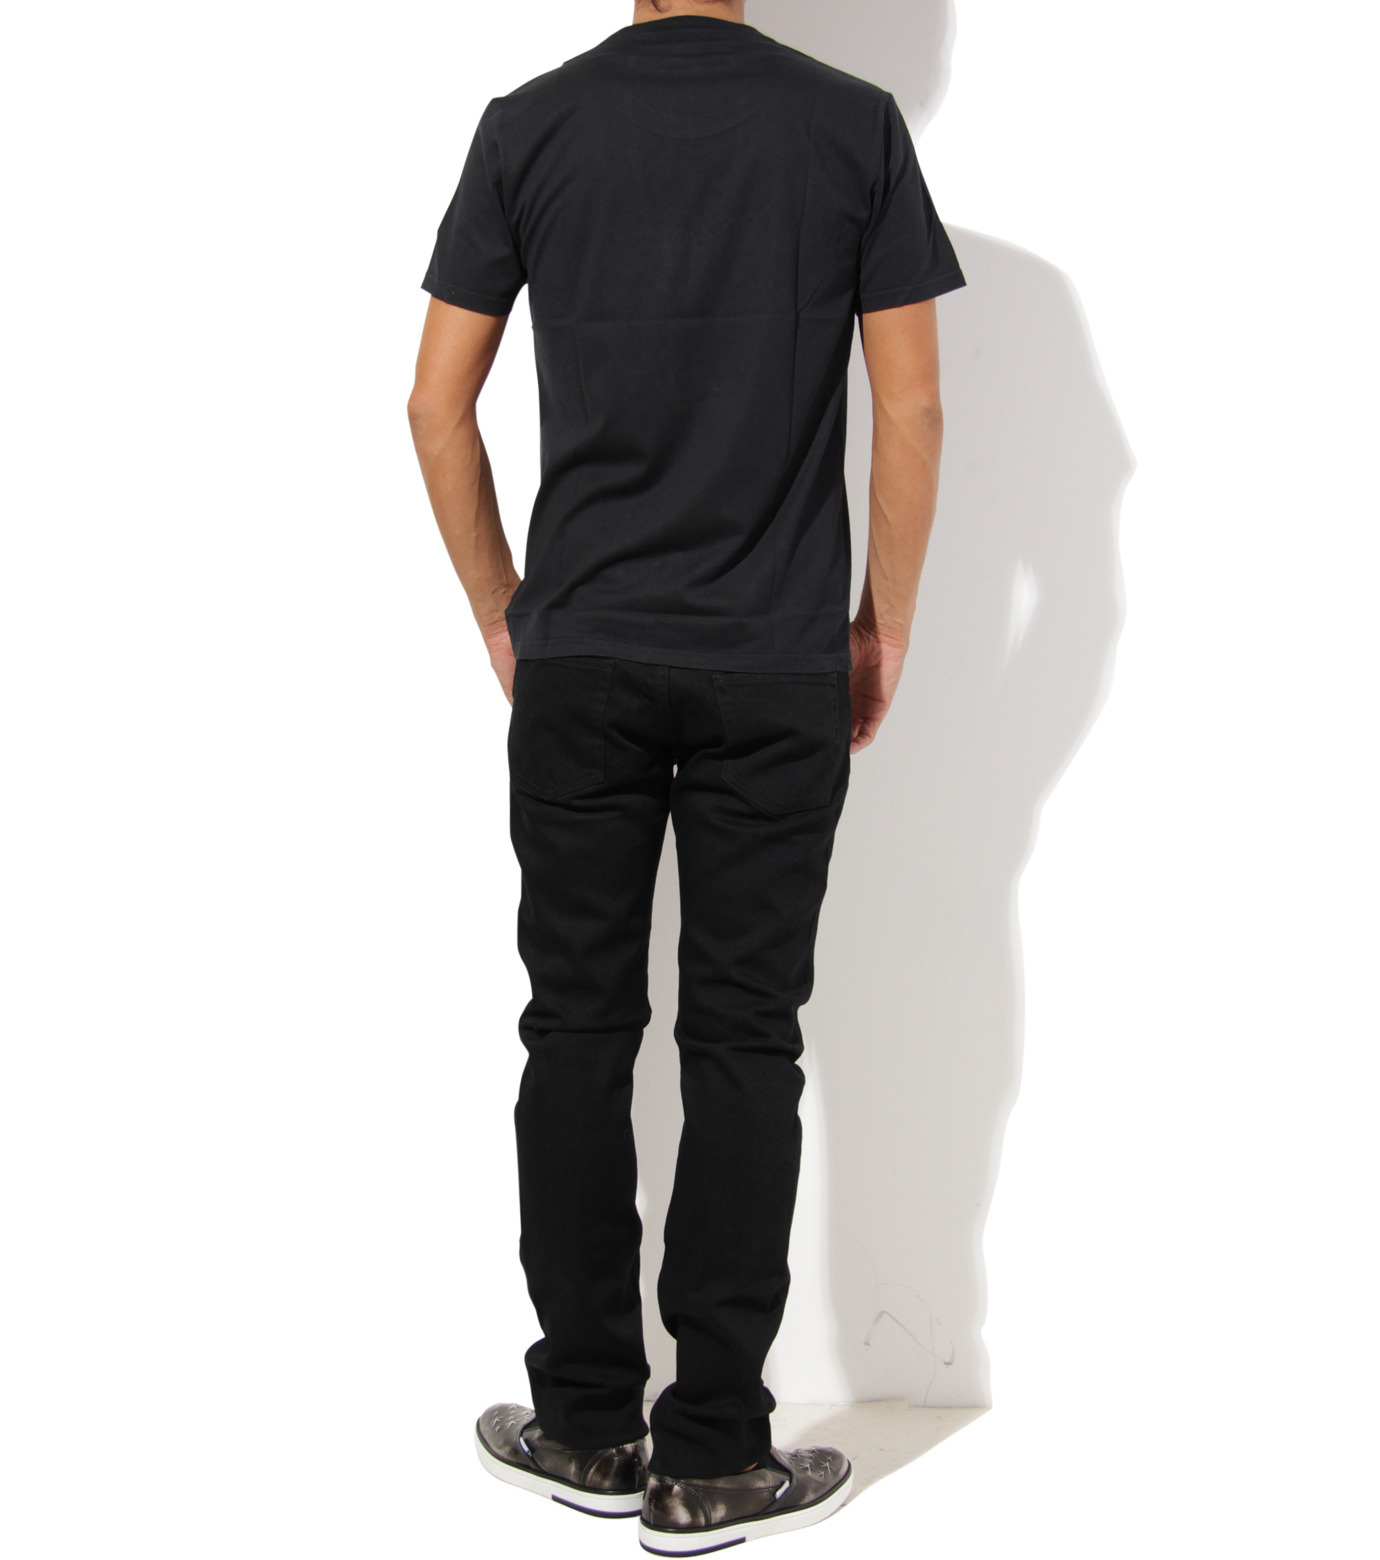 Heddie Lovu(エディー ルーヴ)のU NECK 【SLIM】-BLACK(カットソー/cut and sewn)-ST-S1-00-14A 拡大詳細画像4